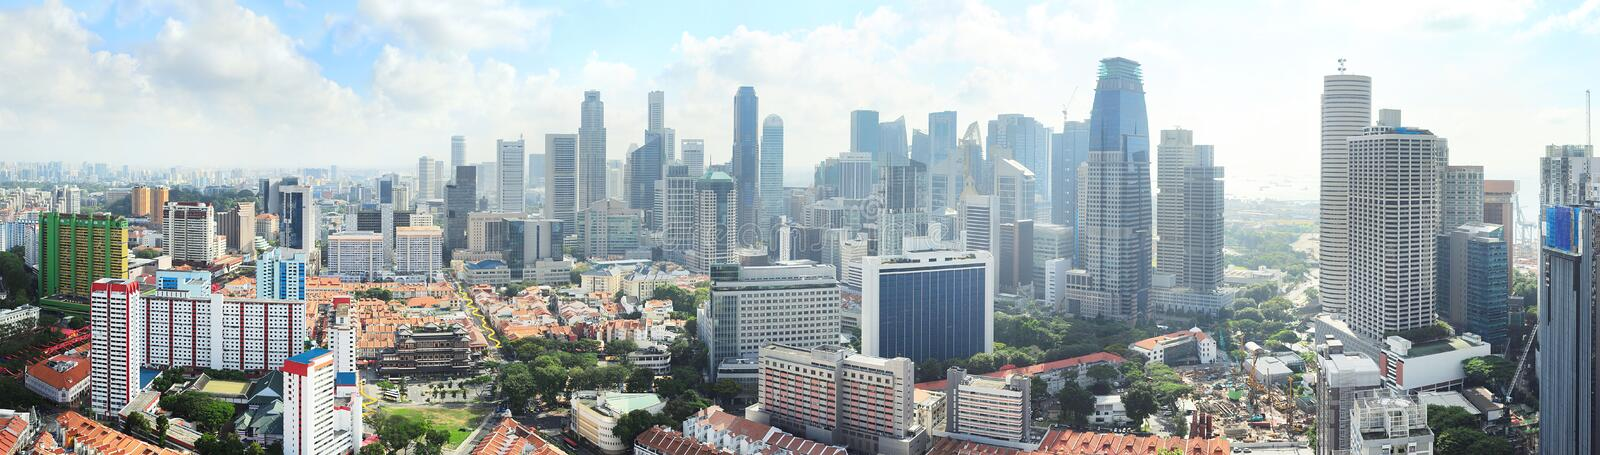 Download Singapore panorama stock image. Image of aerial, birds - 32762183